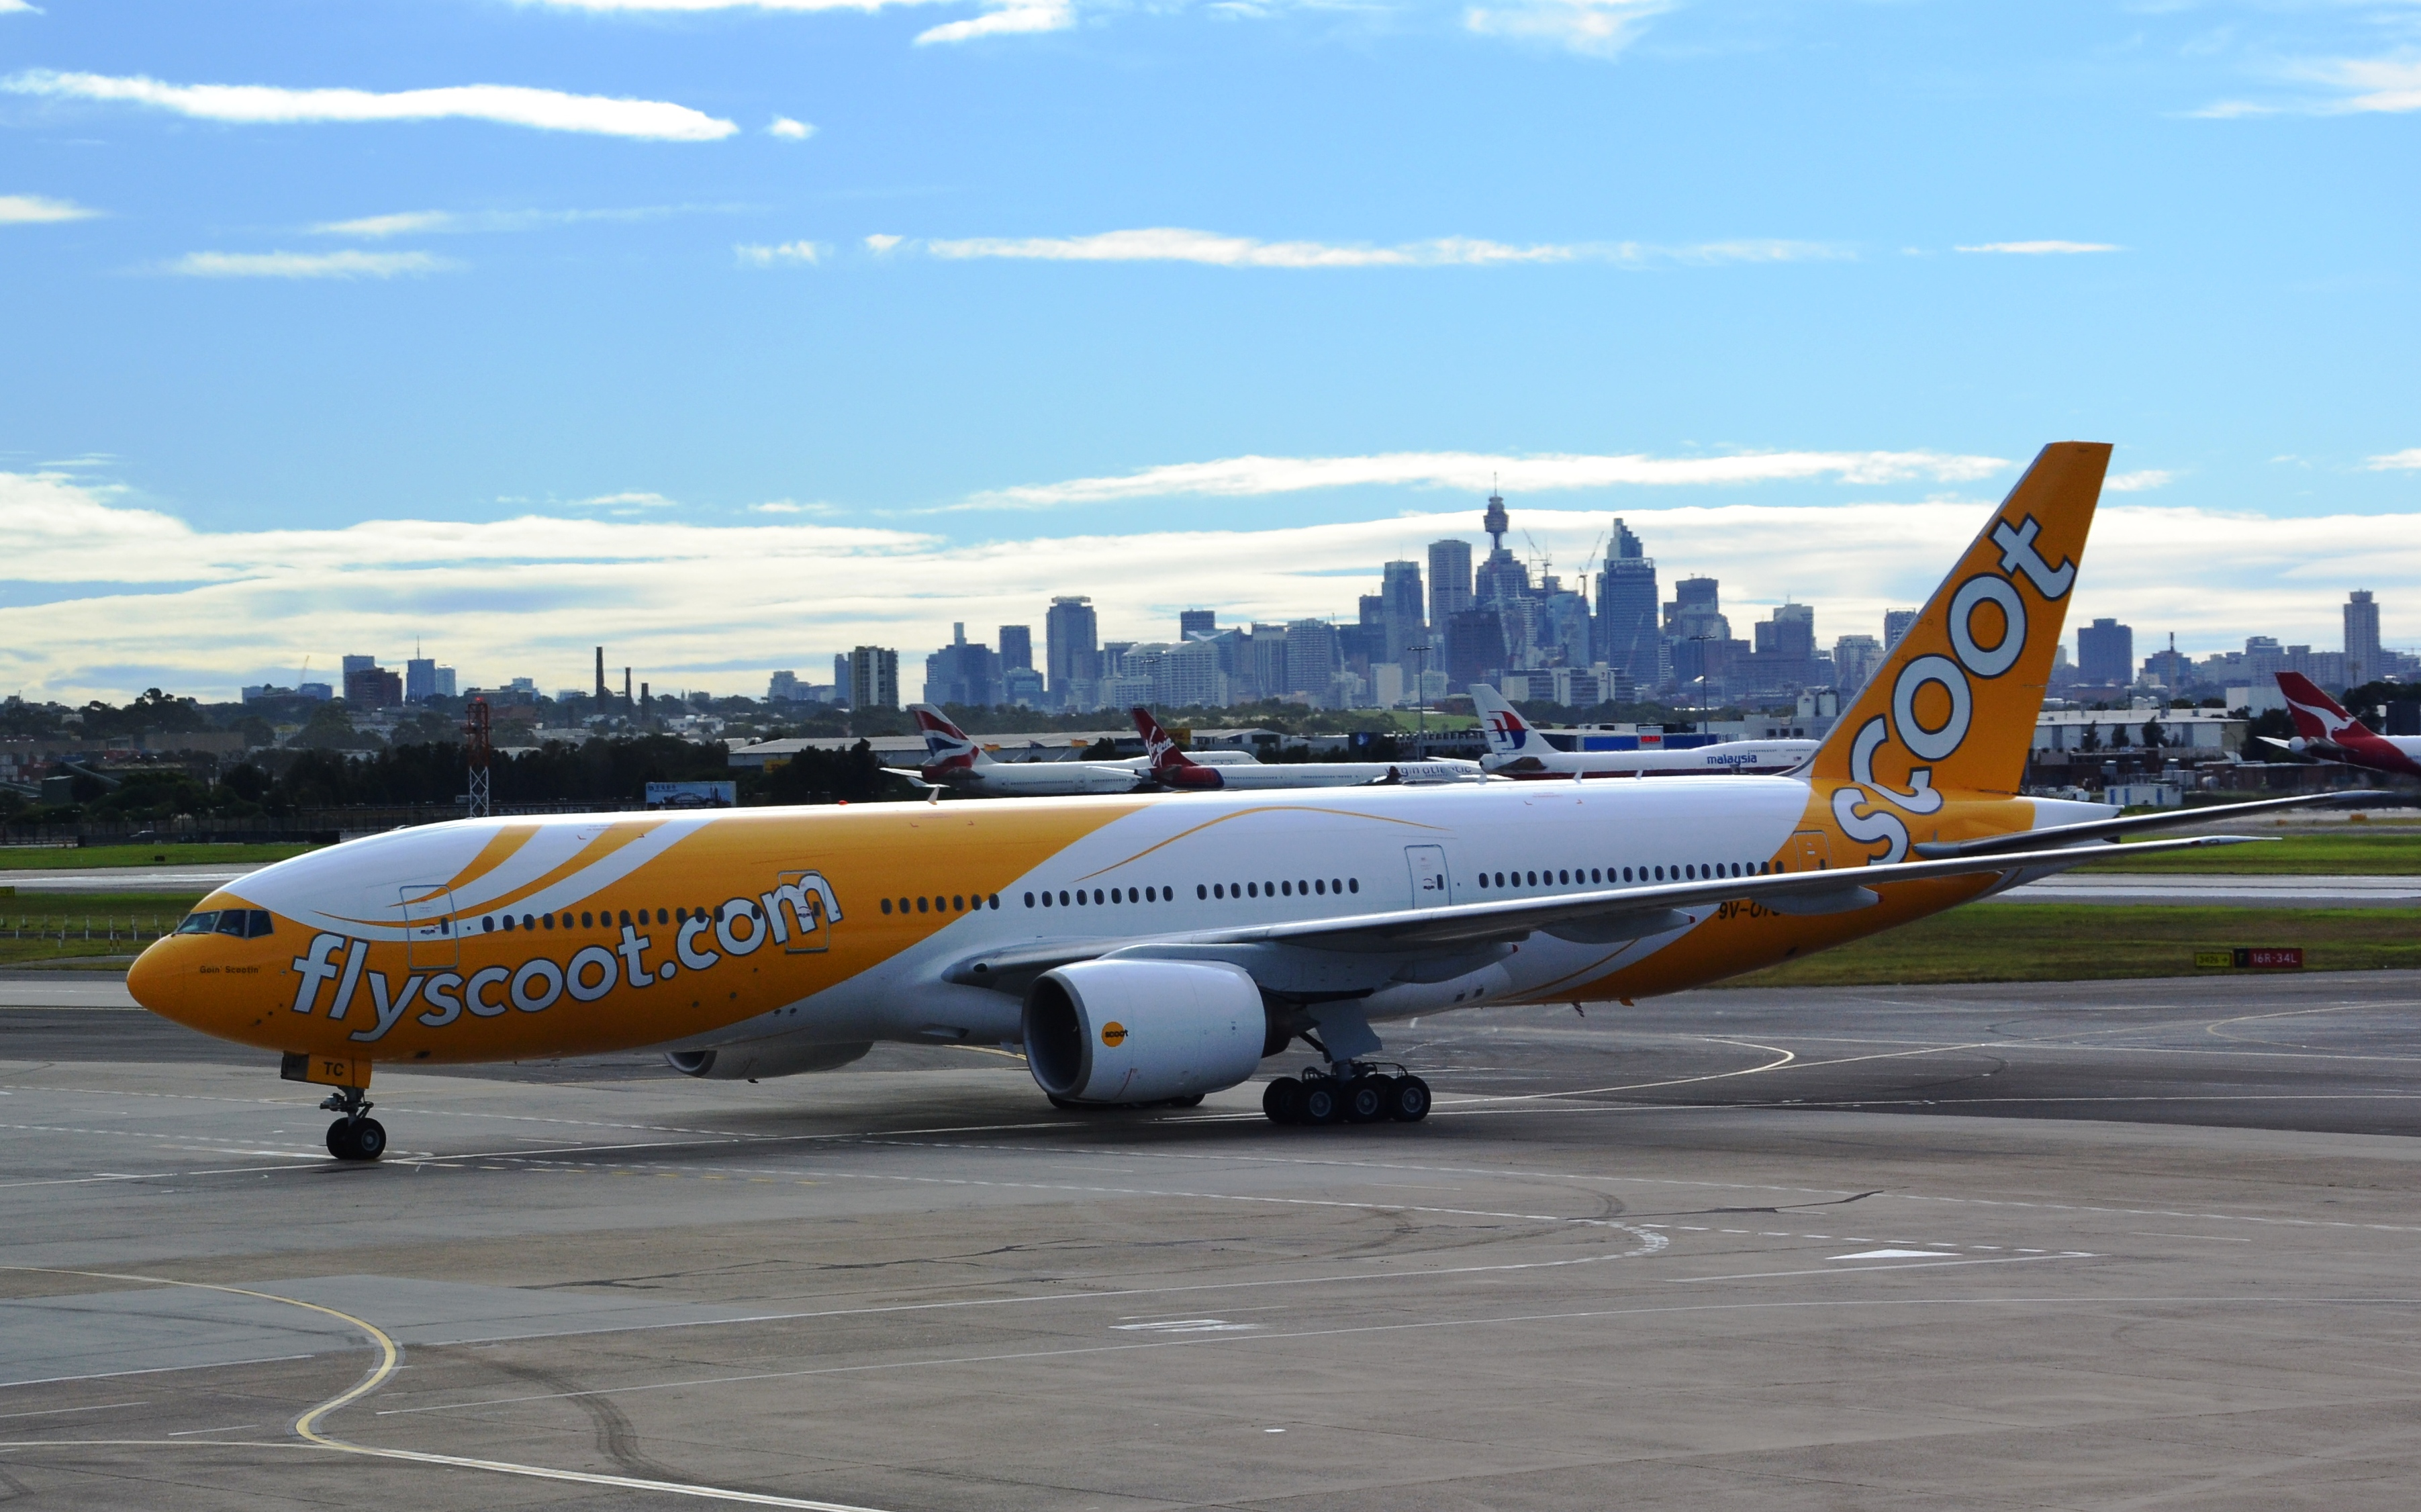 scoot airlines - photo #5